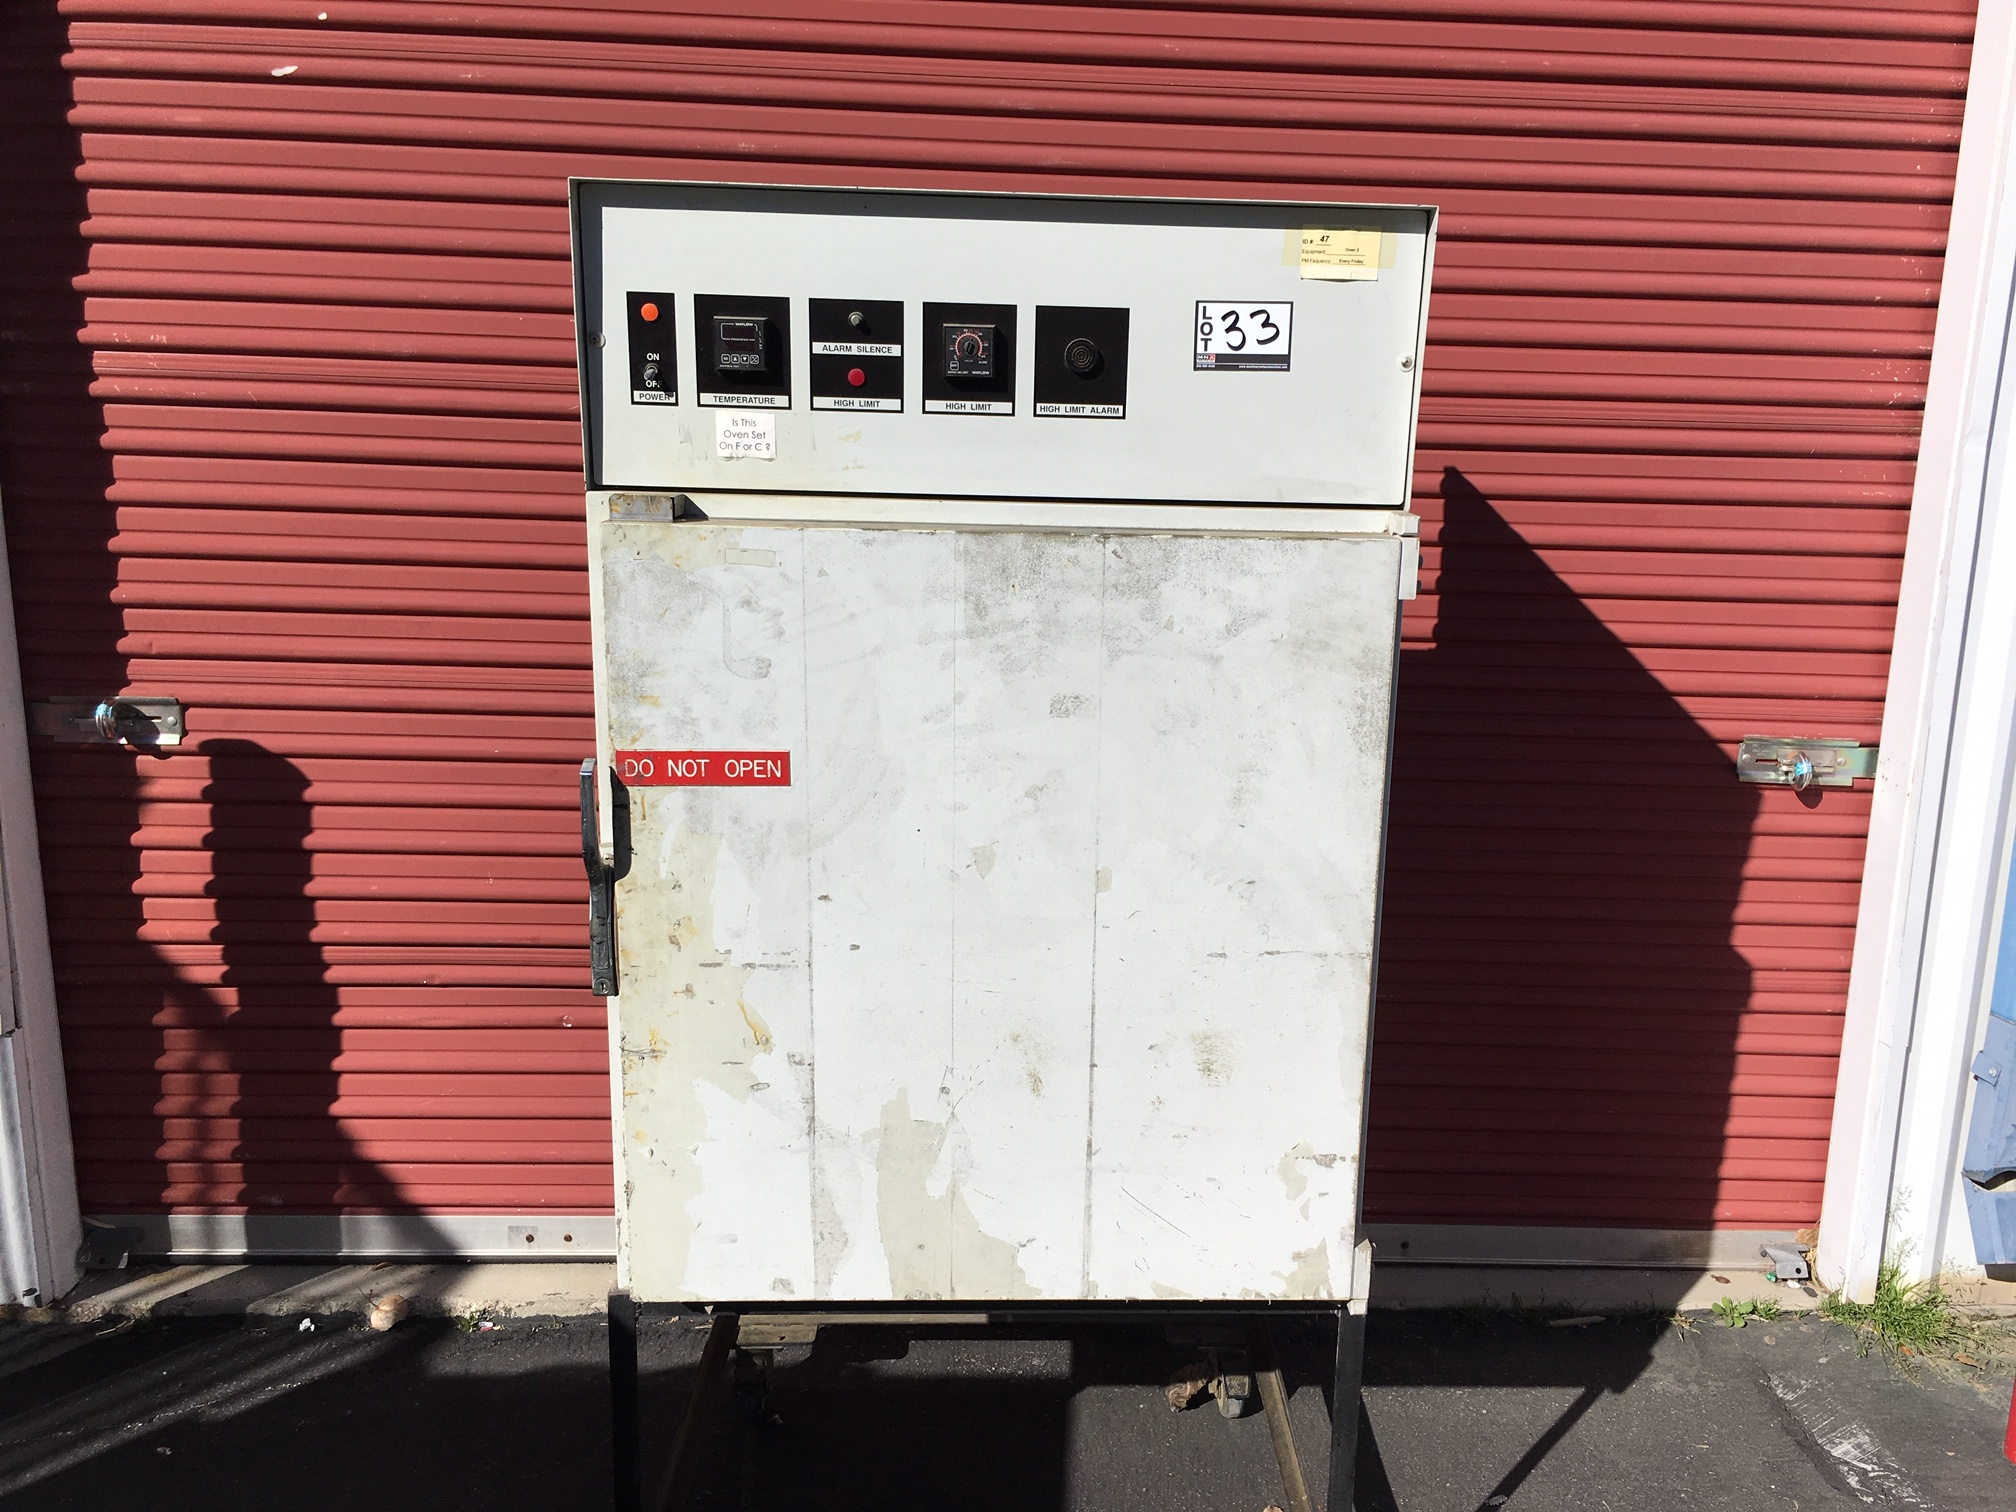 Lot 33 - Oven Model Number MCPLO S/N25945-02